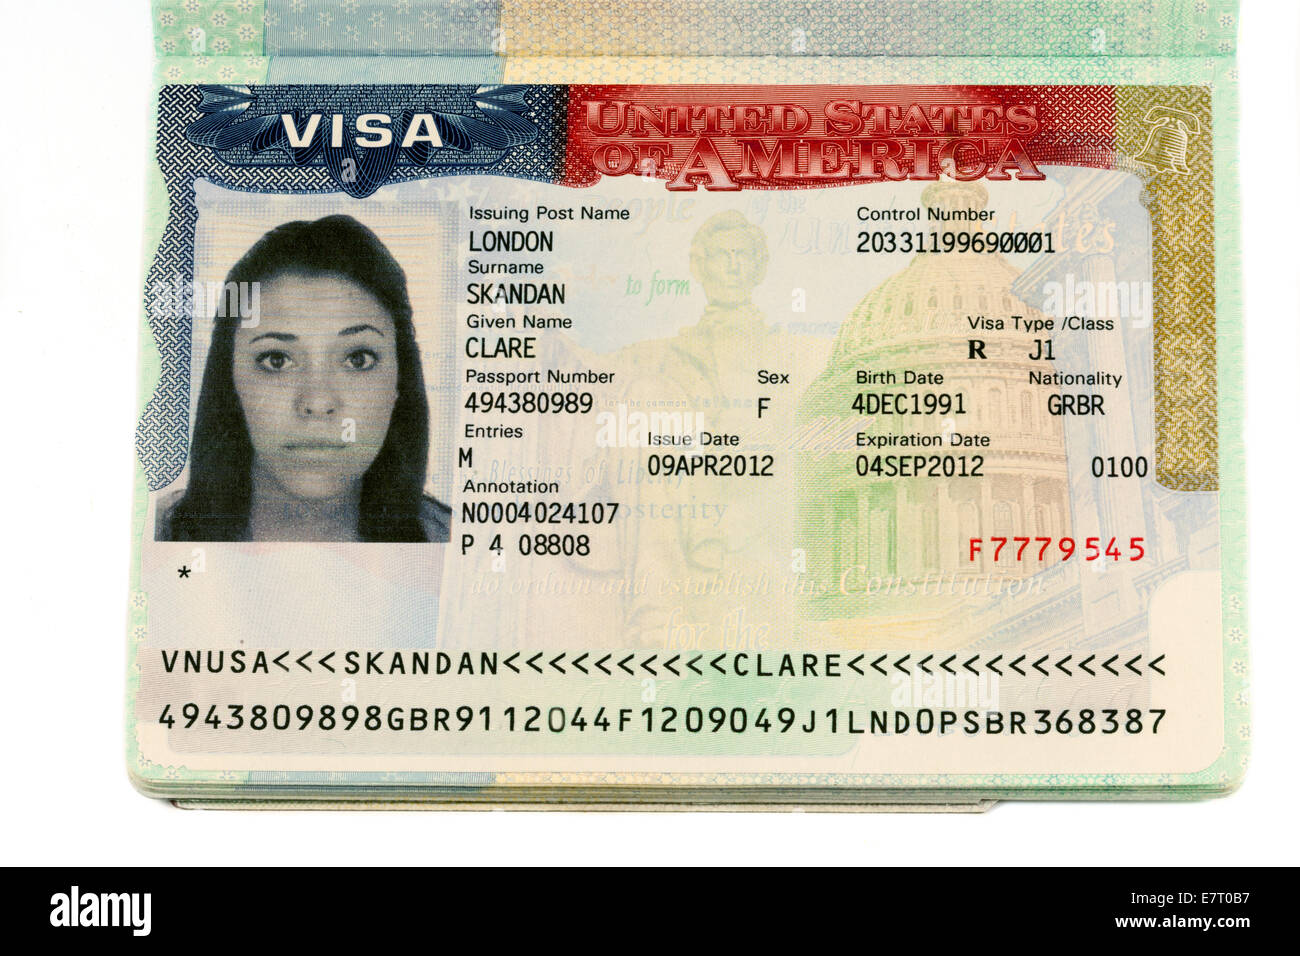 usa work visa in a passport all name and numerical details altered stock photo 73671227 alamy. Black Bedroom Furniture Sets. Home Design Ideas